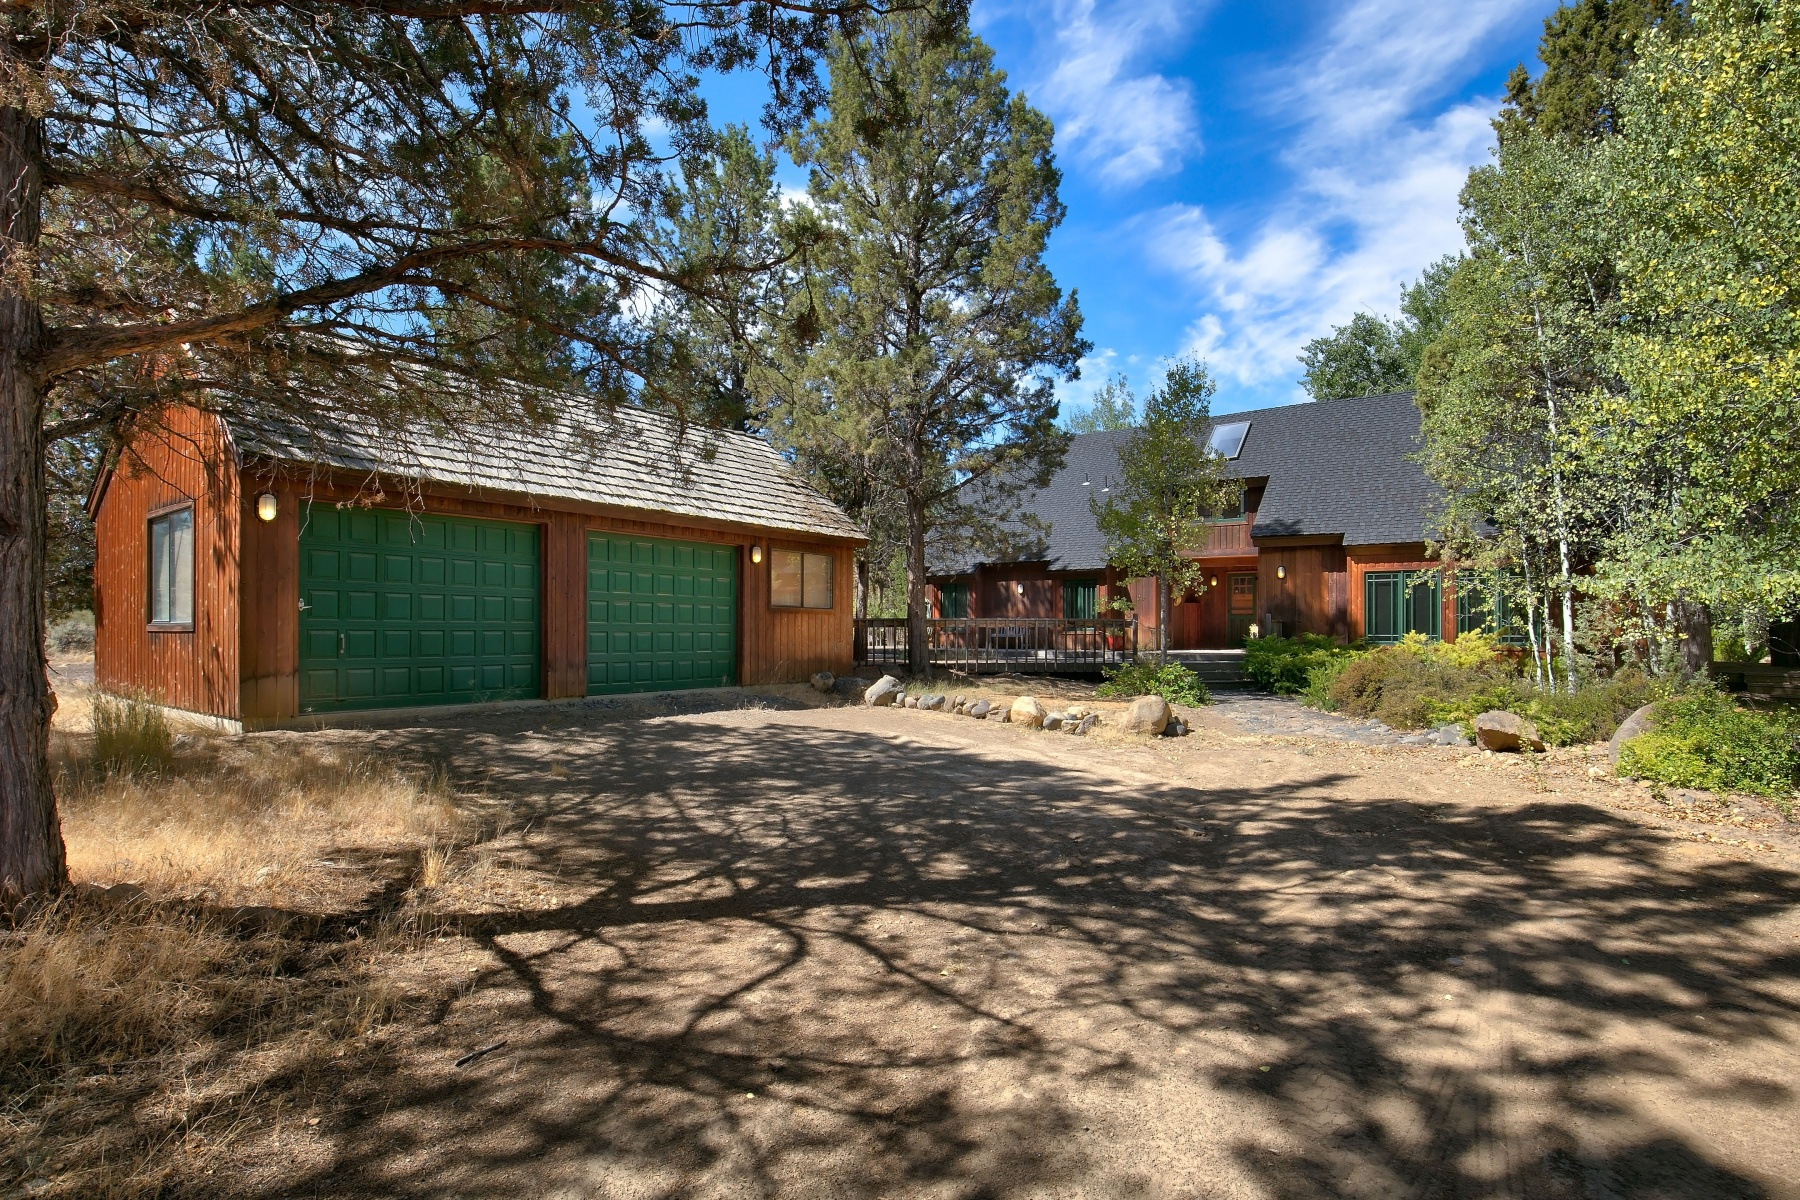 Single Family Home for Sale at Private 8 Acre Oasis 18463 Tumalo Reservoir Road, Bend, Oregon, 97701 United States